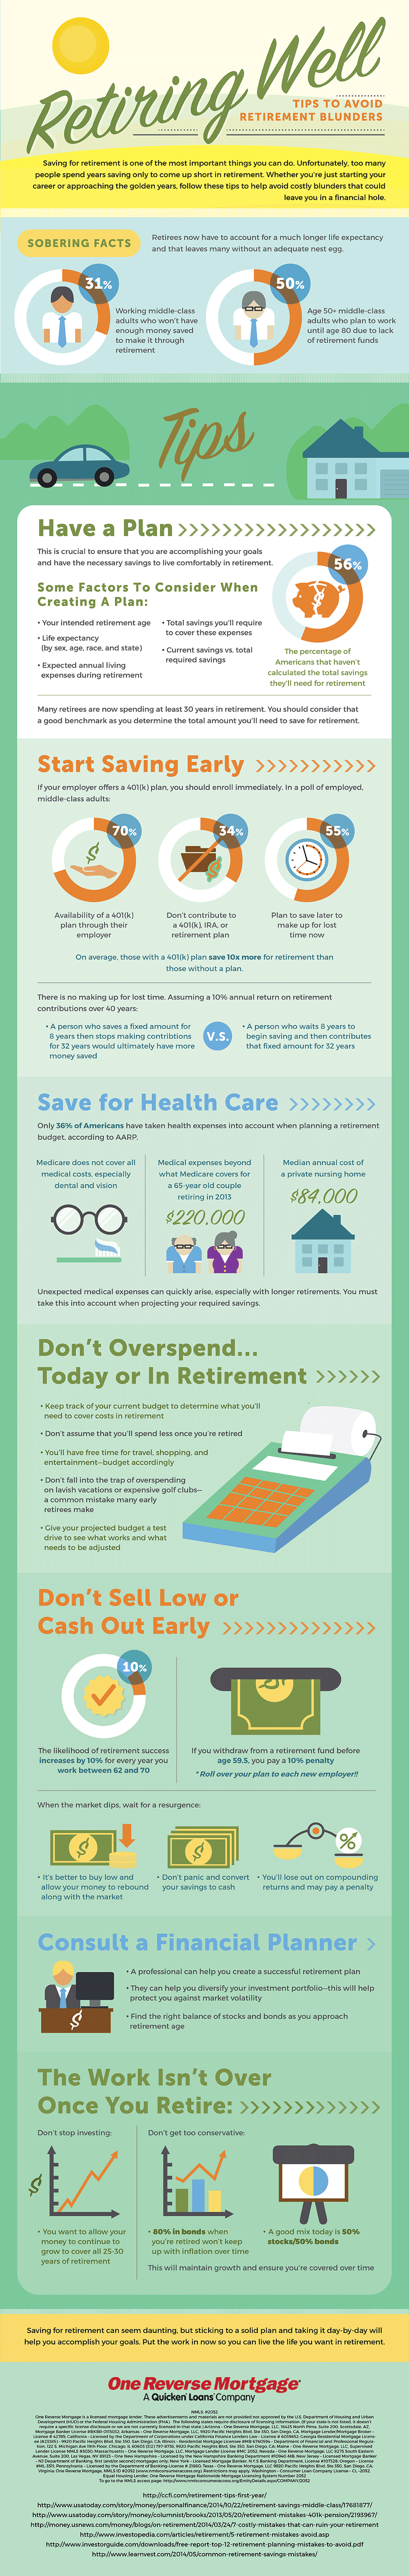 infographic-retirement-blunders